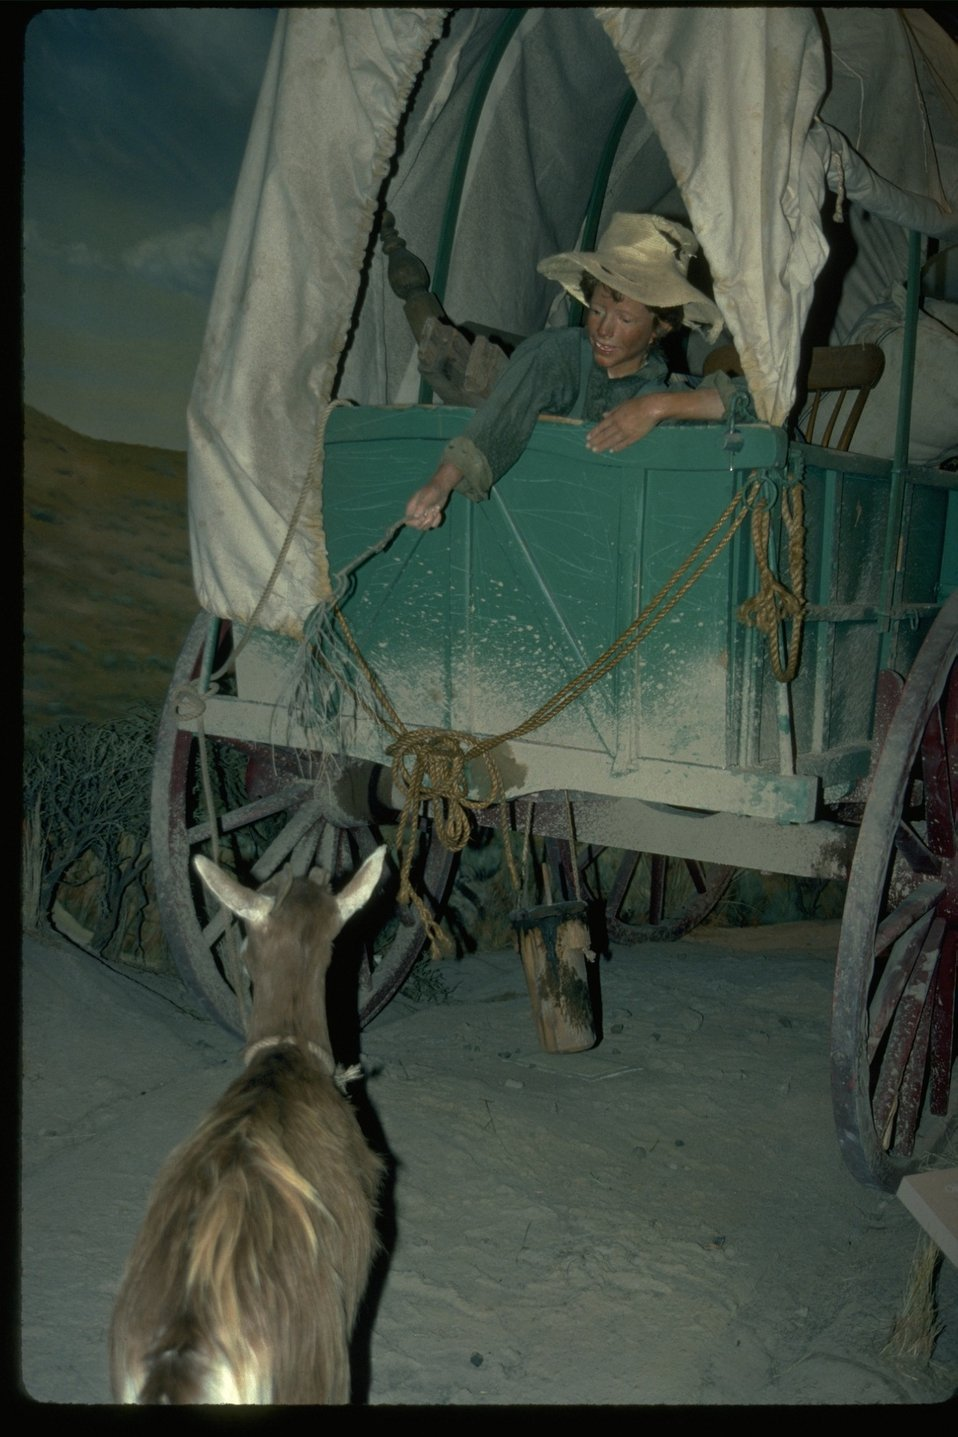 Living history exhibit at the NHOTIC with a child temping a goat to the rear of the wagon.